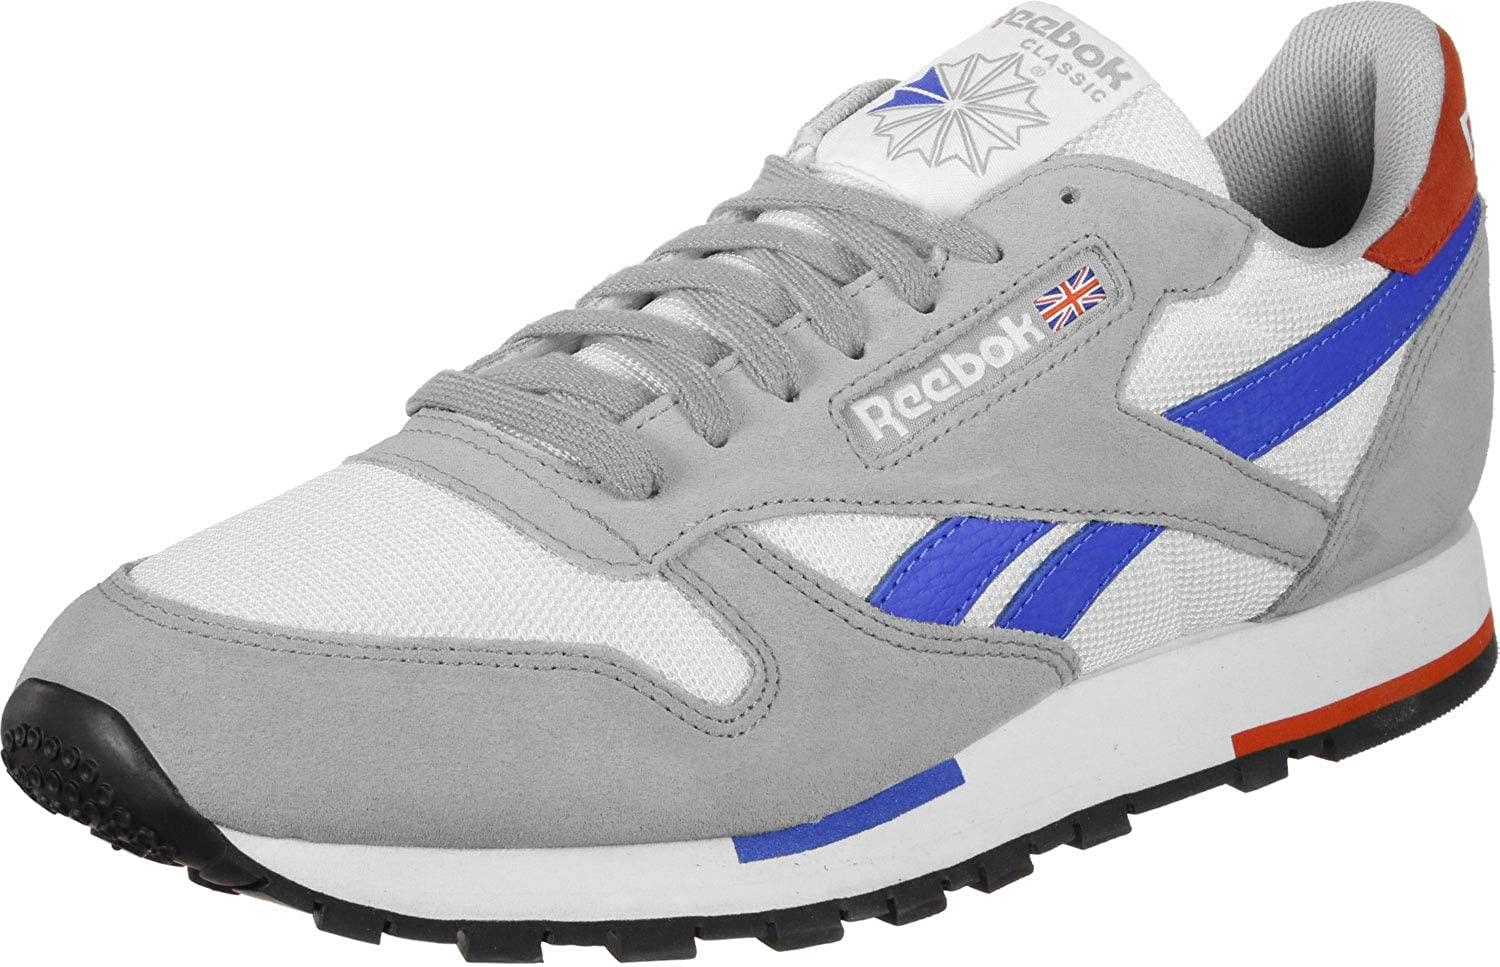 Reebok Classic Leather MU Calzado: Amazon.es: Zapatos y